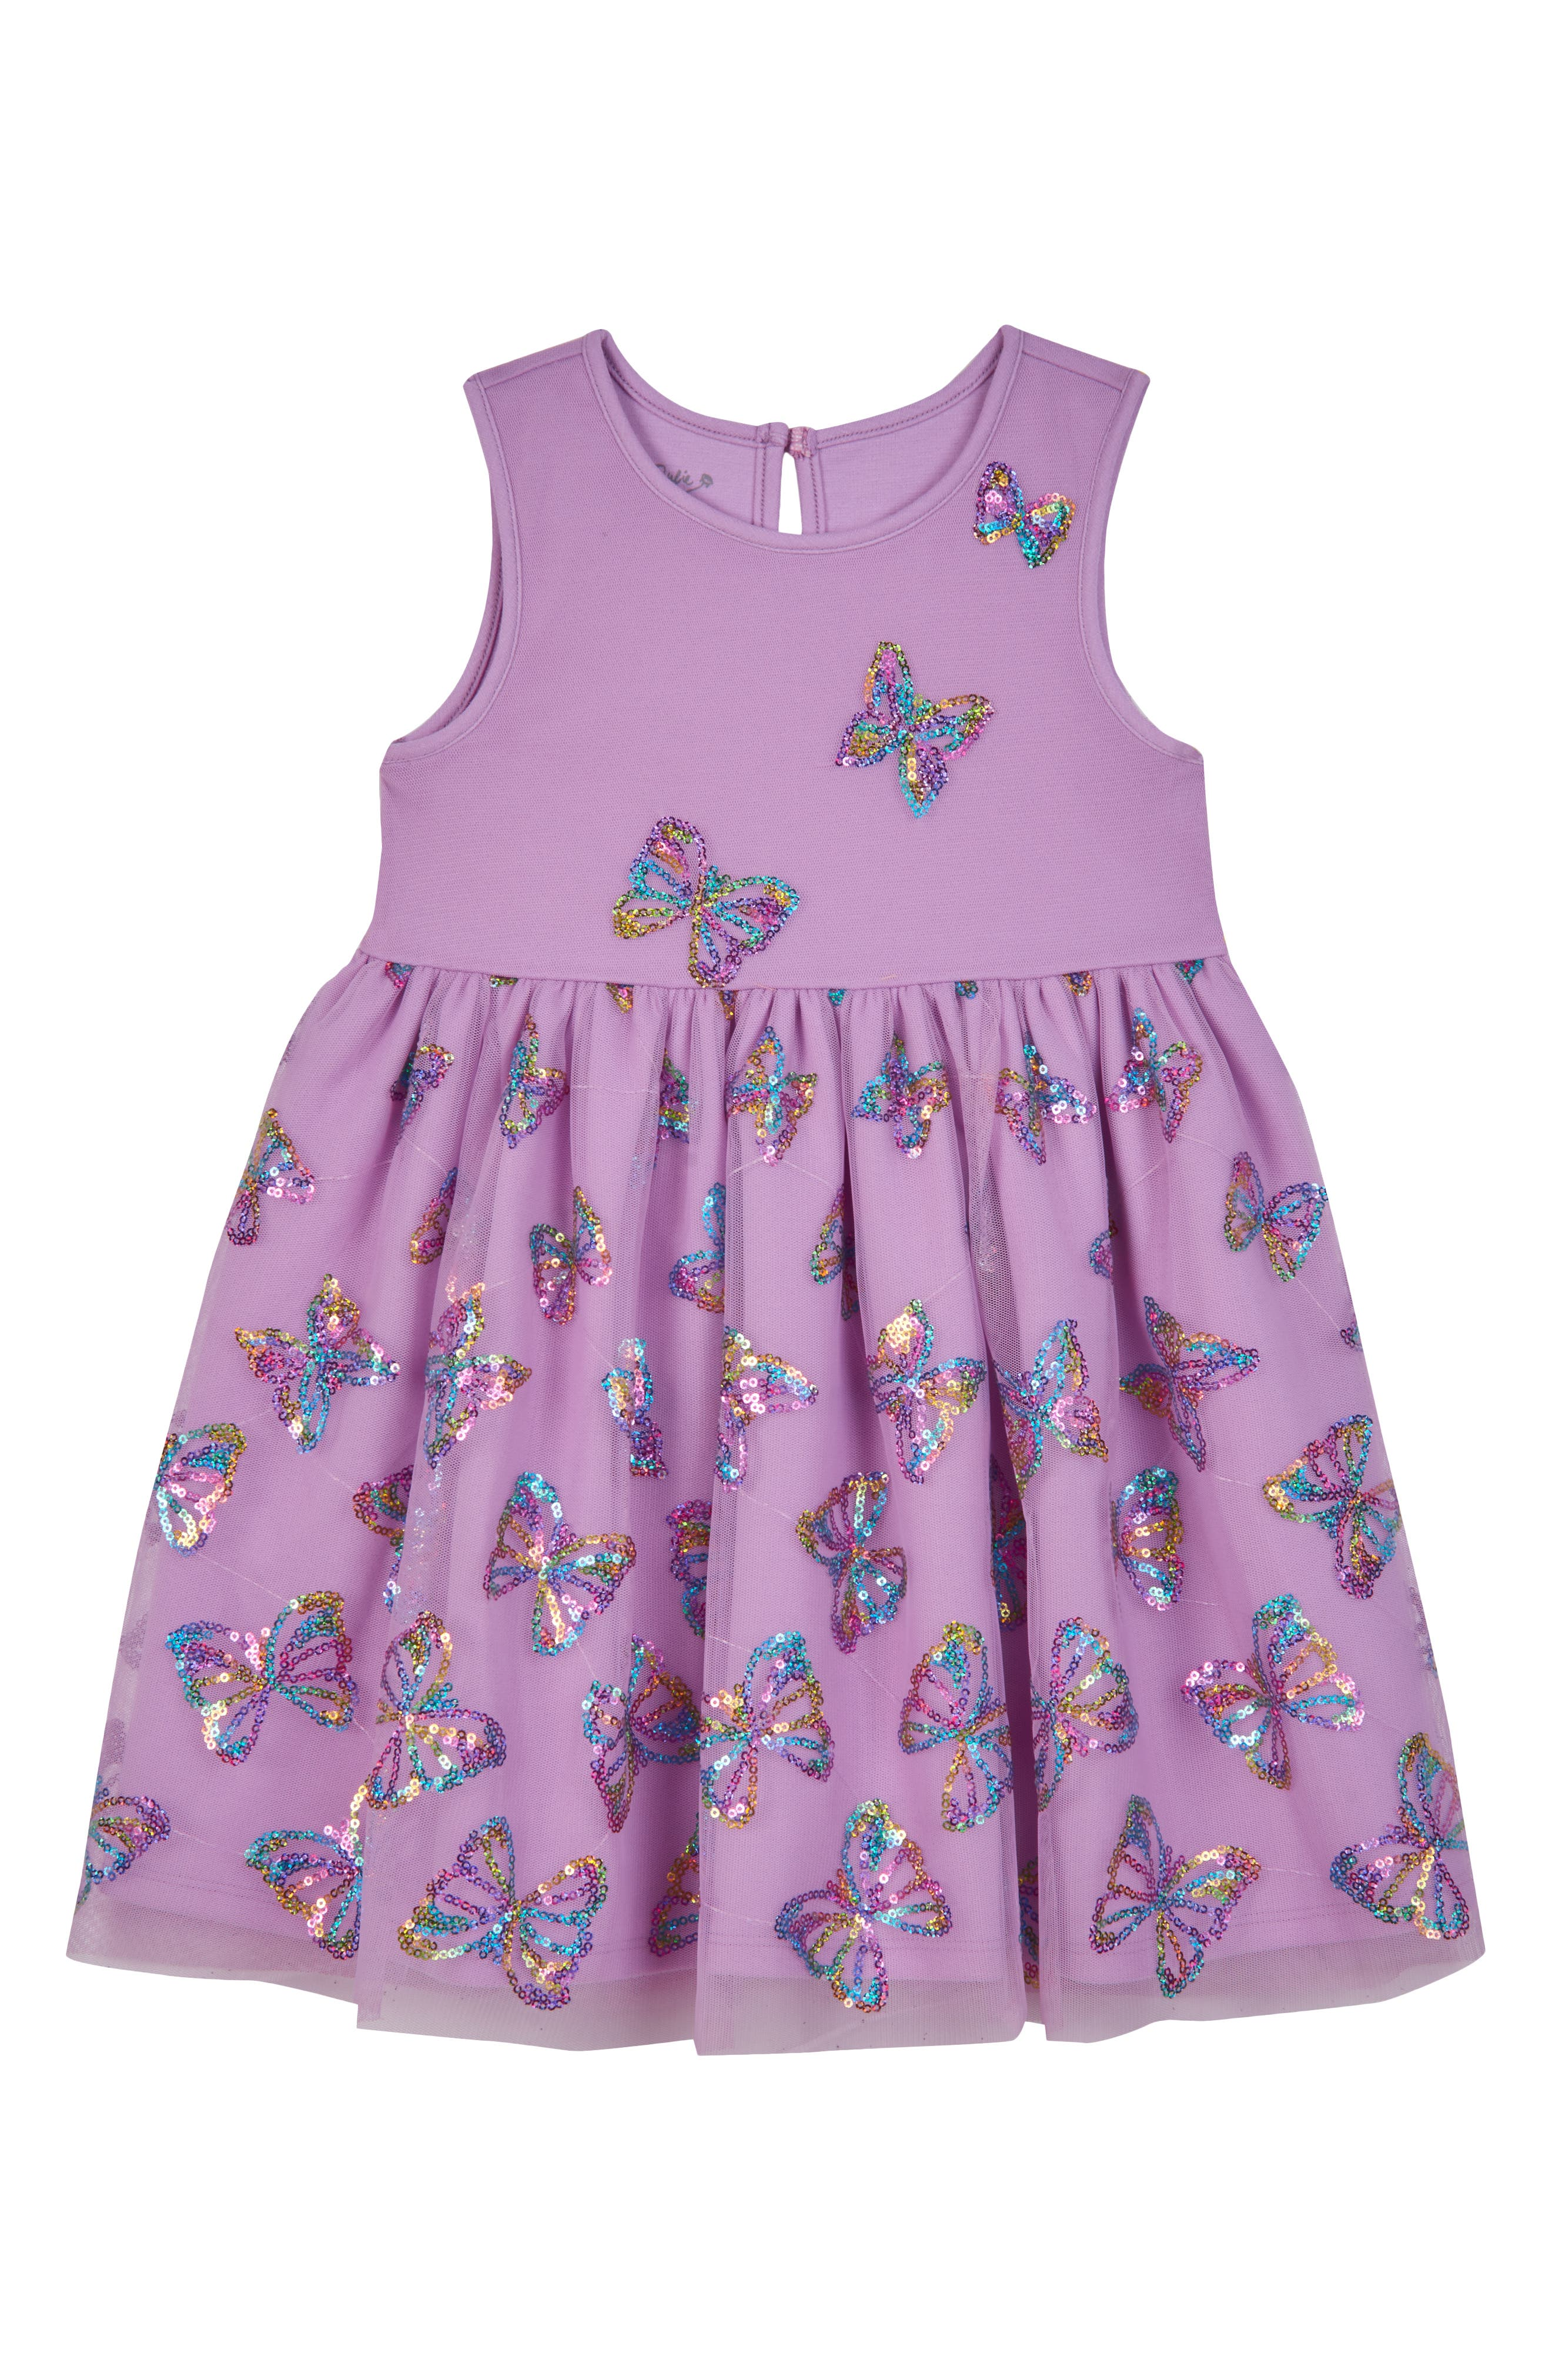 Image of Pippa & Julie Sequin Butterfly Tank Dress